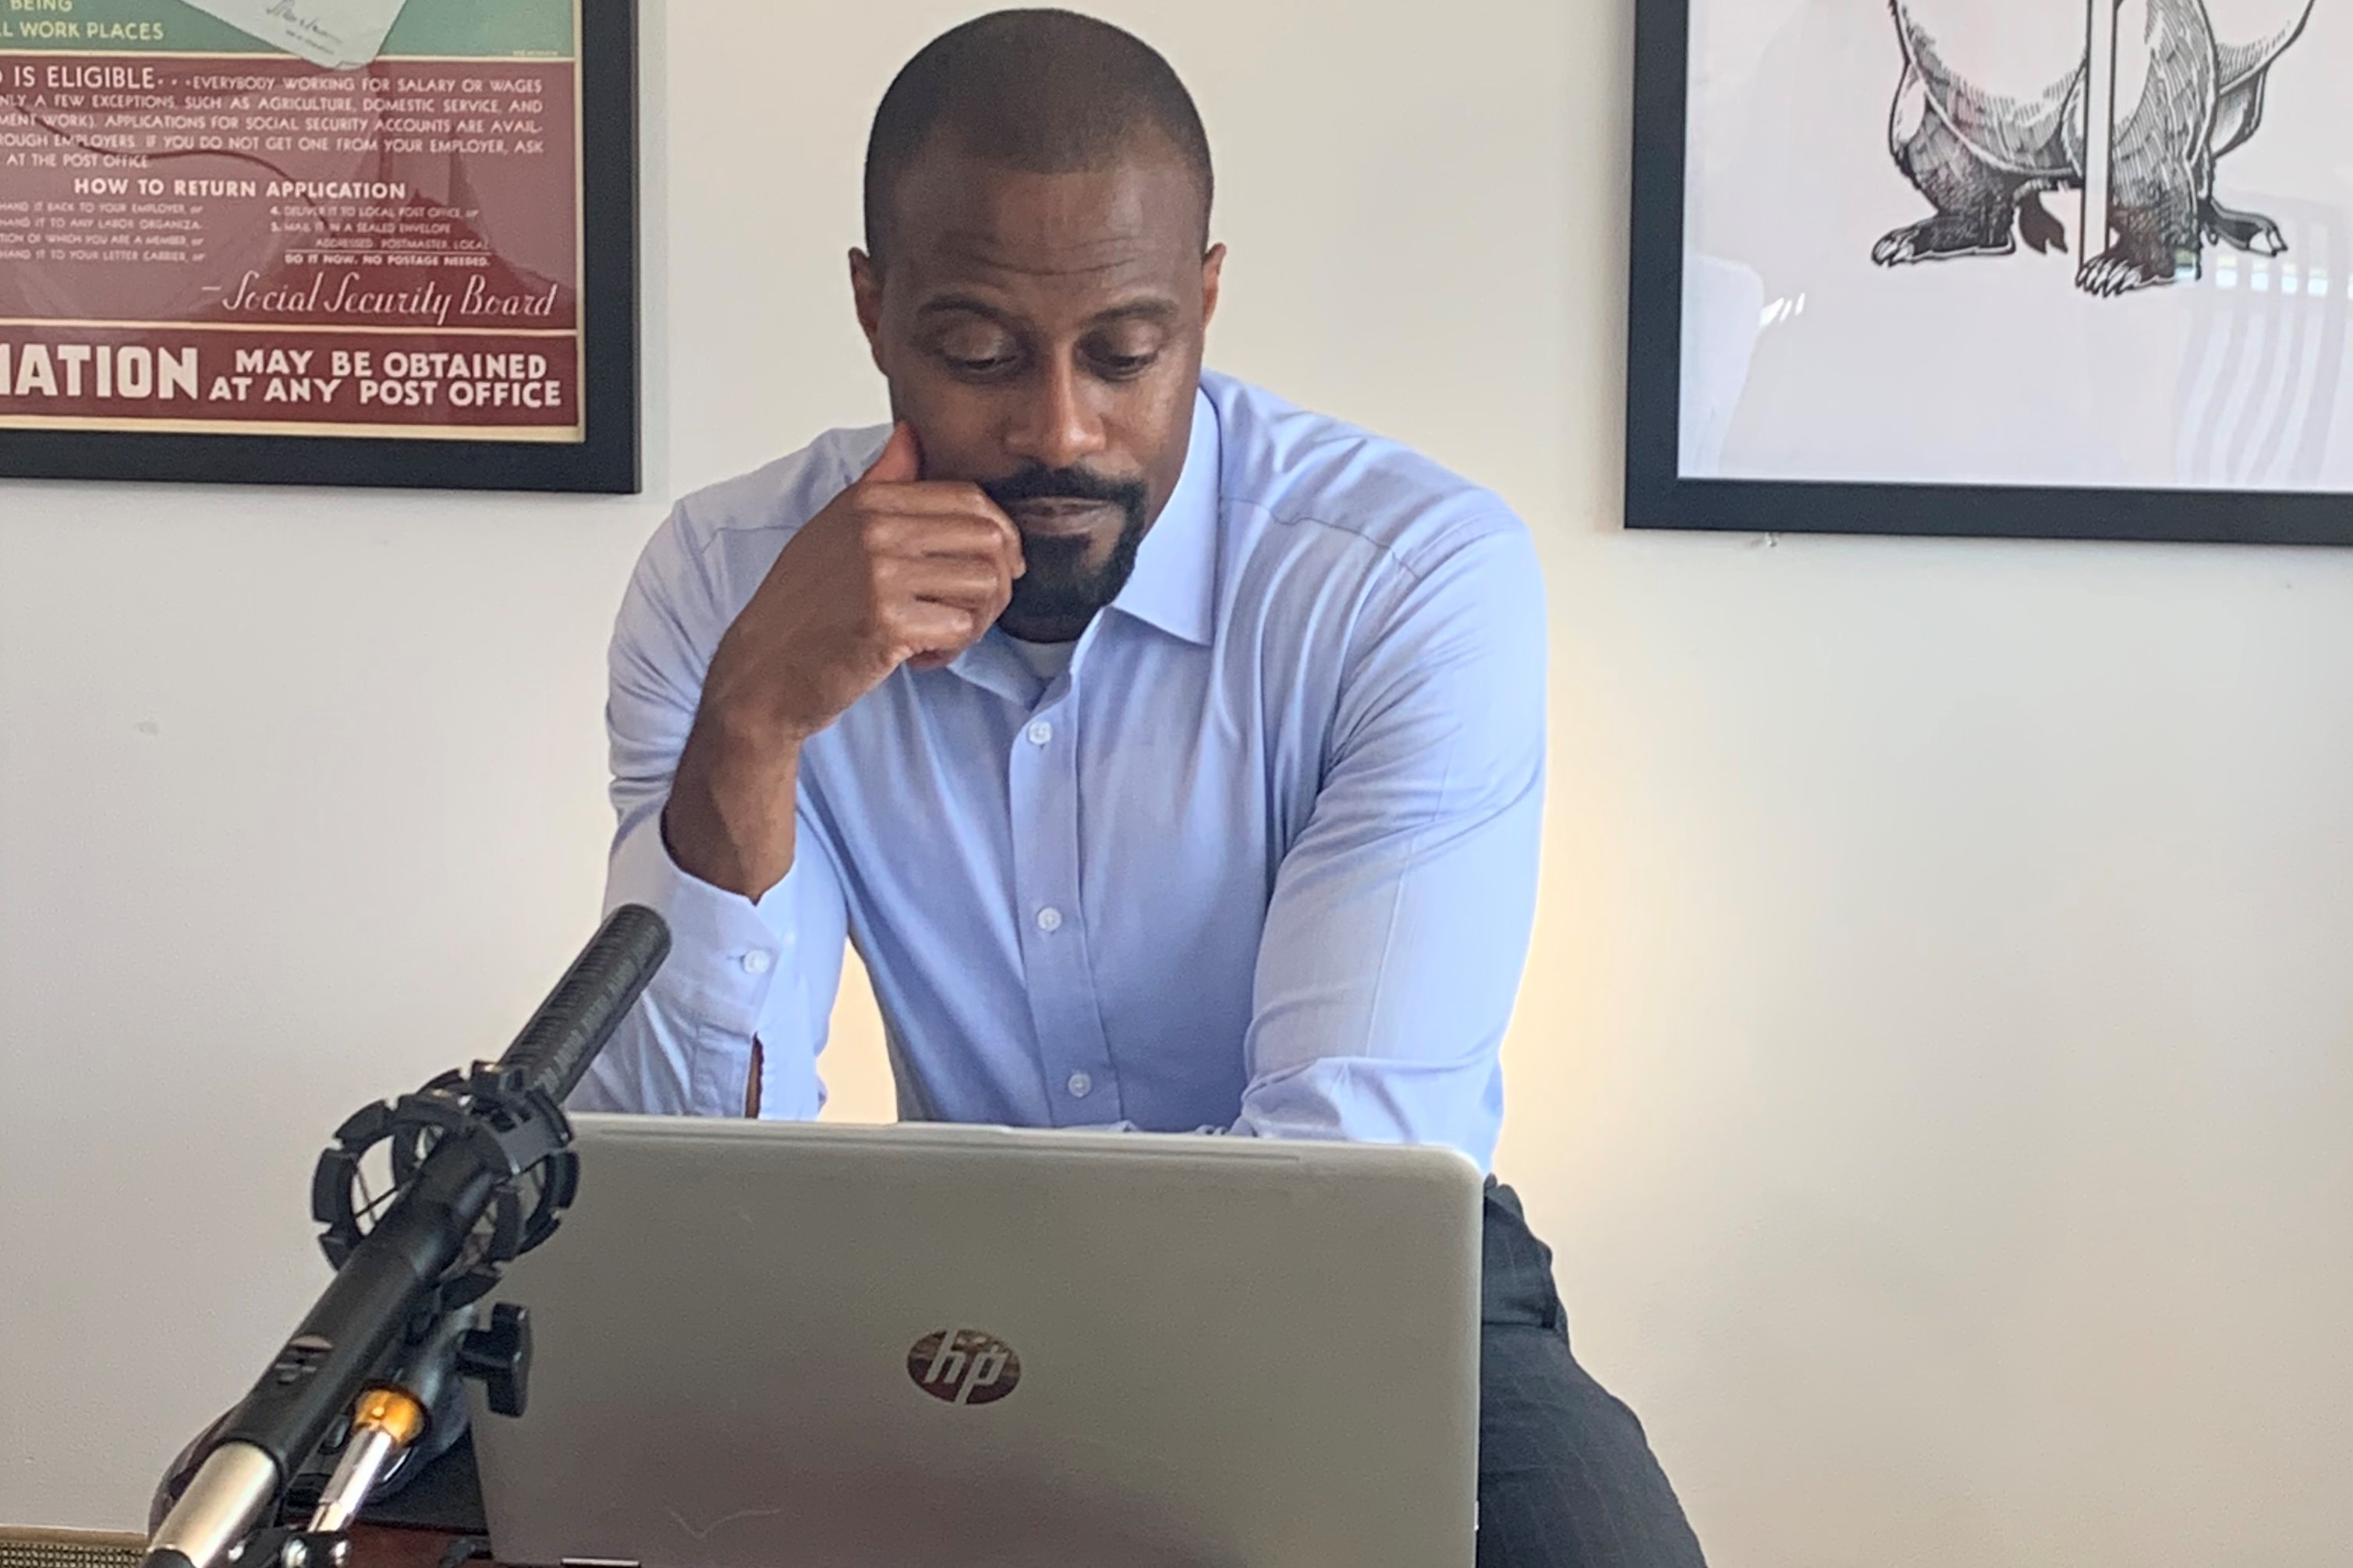 Donald pictured working on his laptop